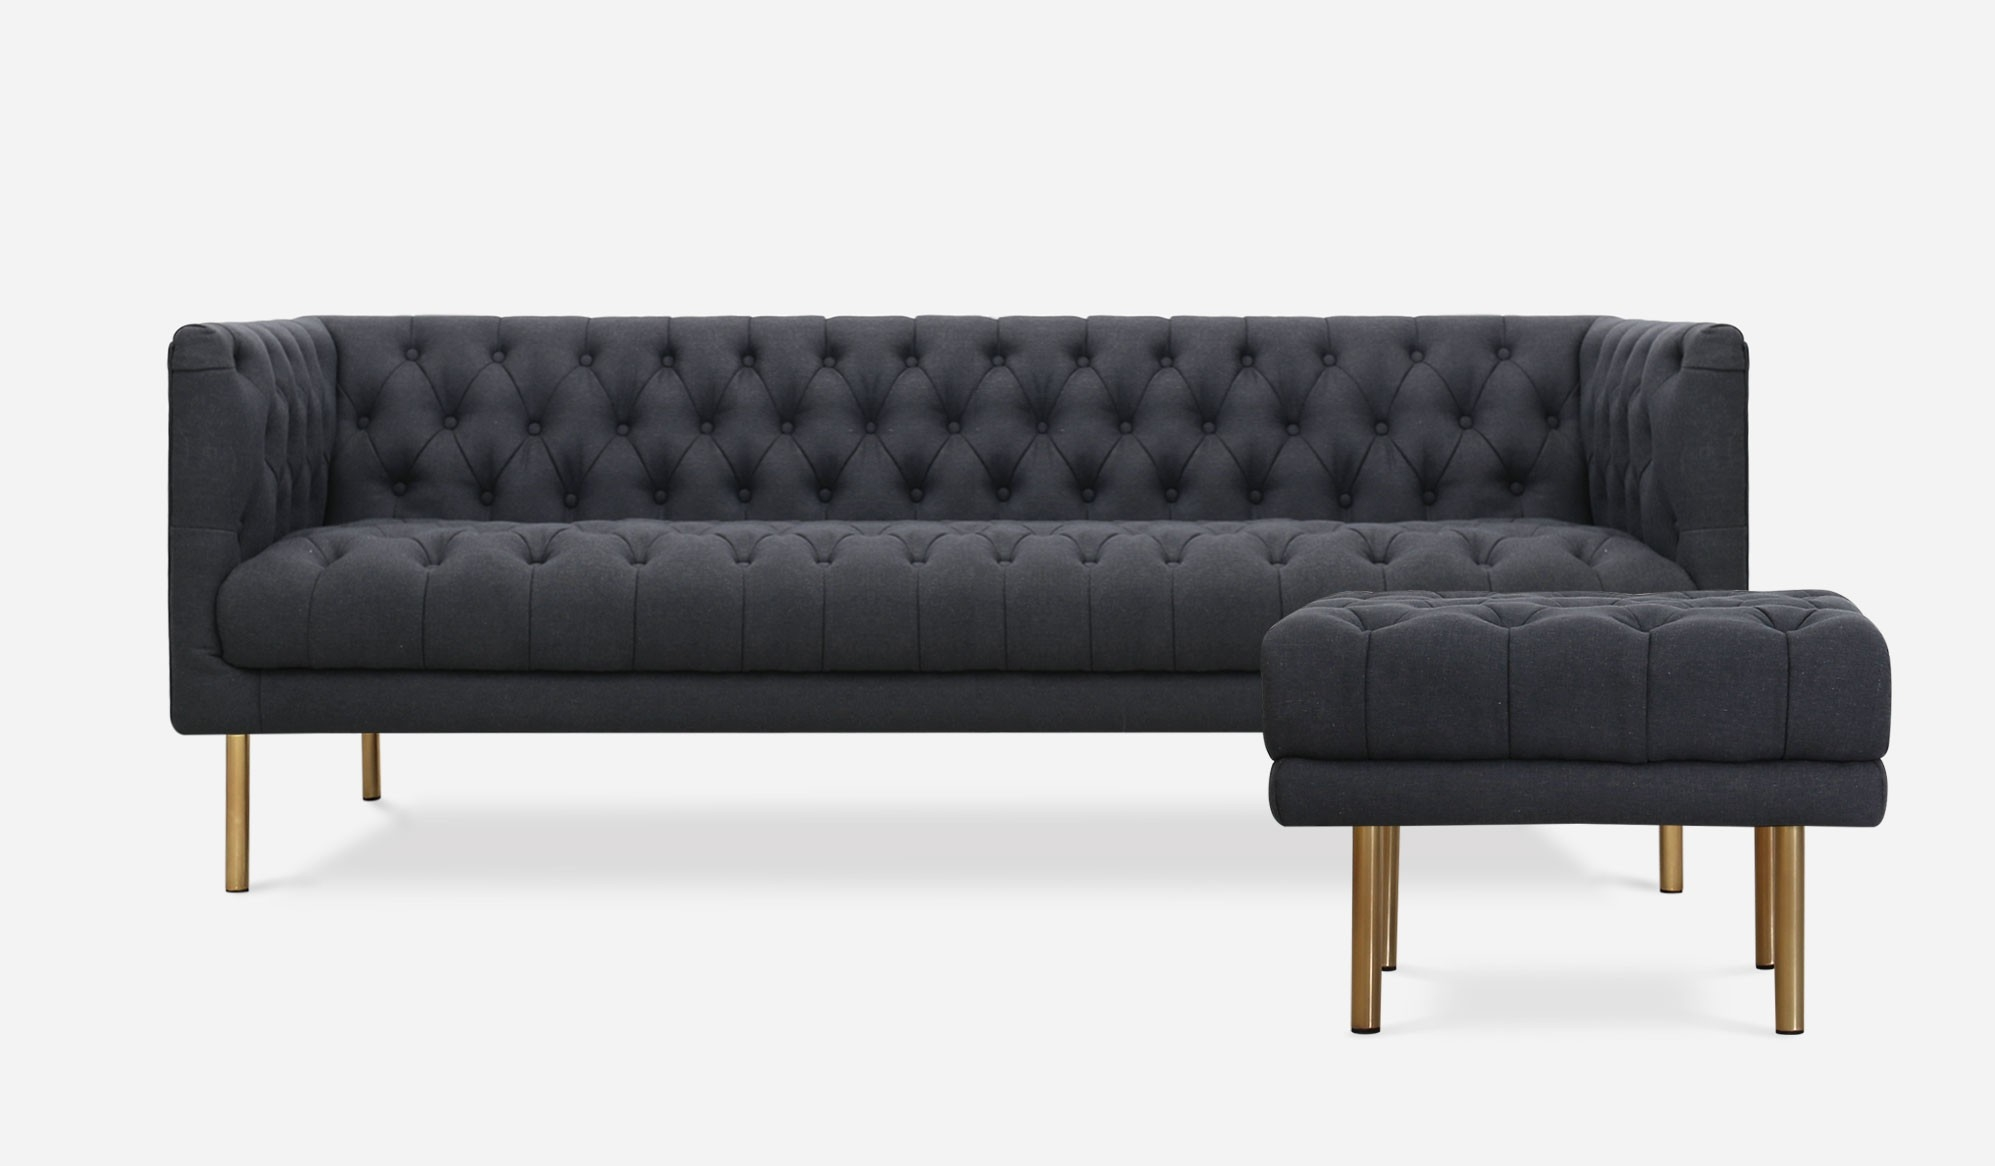 sleeper sofa charlotte nc furniture bangalore 15 collection of abbyson living beige sectional